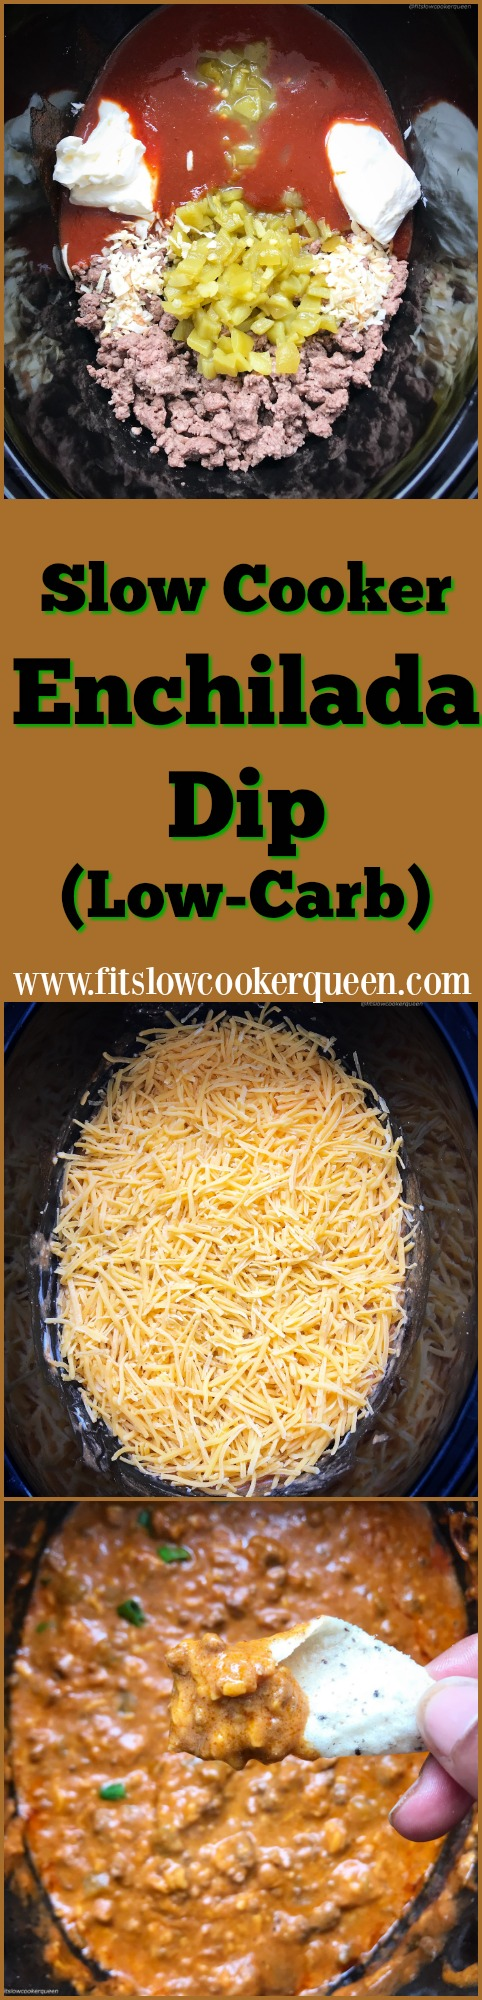 Enchilada dip is an easy and flavorful appetizer that comes together very quickly. This super easy low-carb version of enchilada dip cooks in the slow cooker making it perfect for your next party or company potluck.